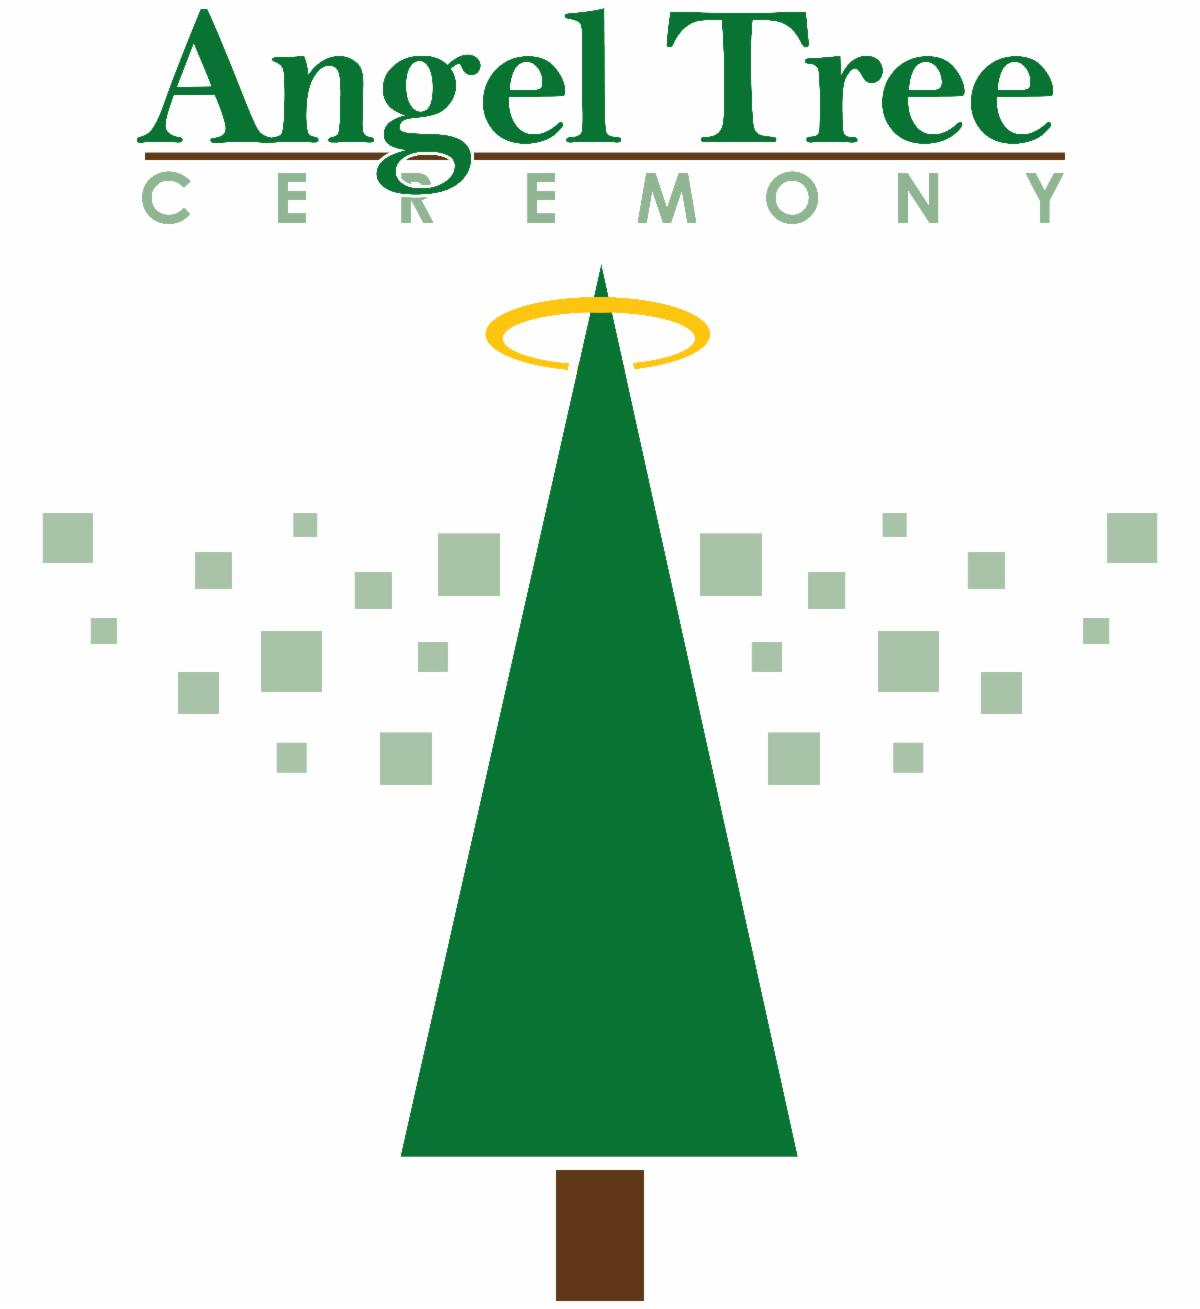 2019 Angel Tree Ceremony